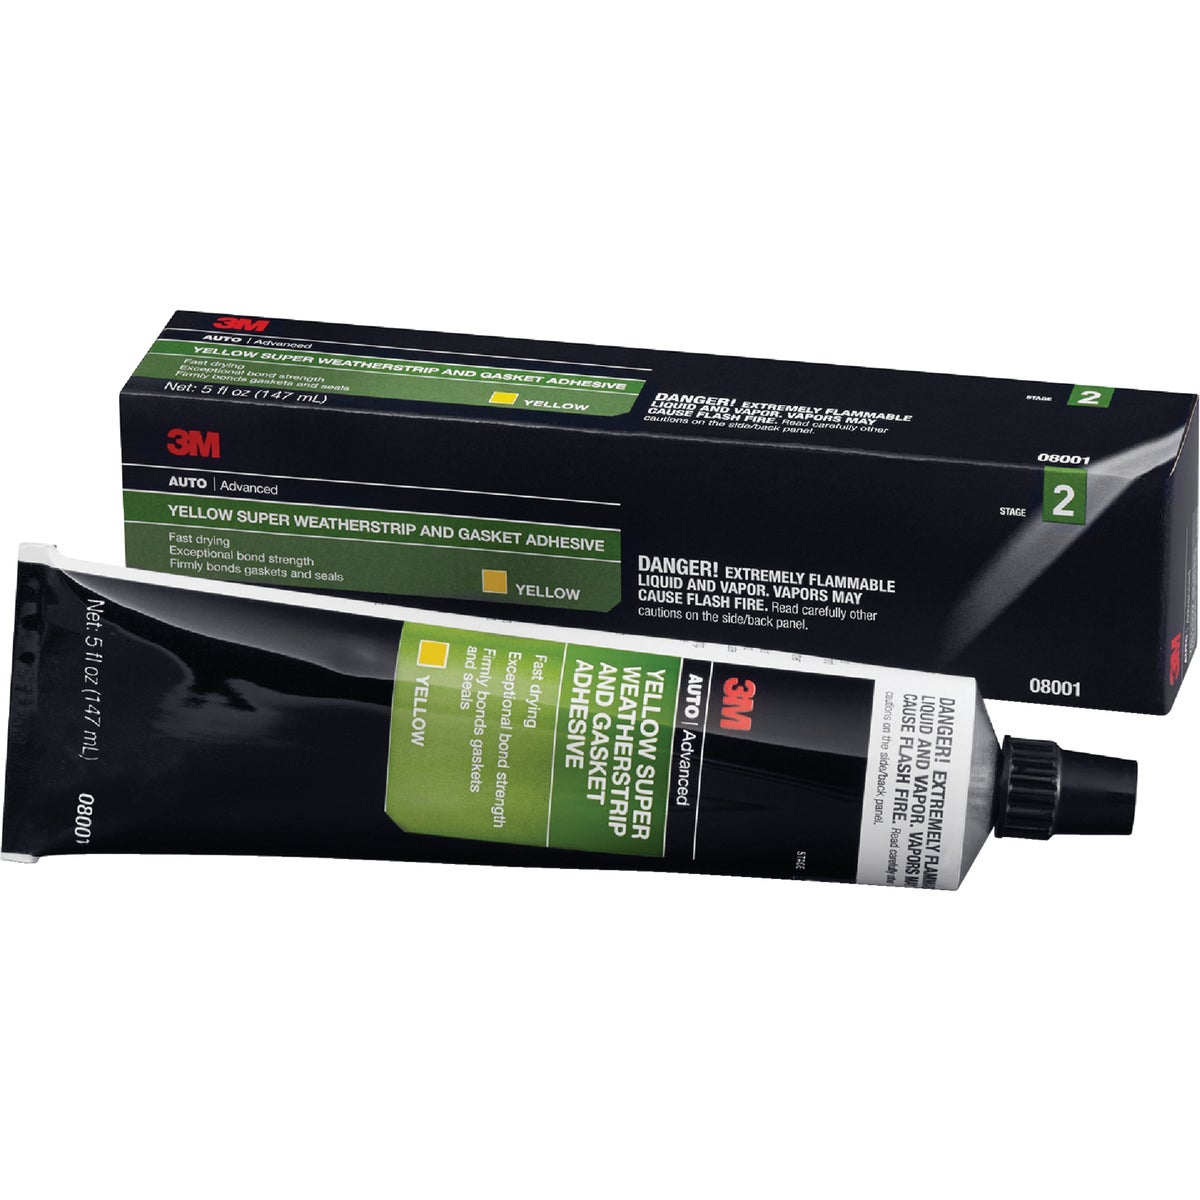 WEATHERSTRIP ADHESIVE - 08001 by 3m Co